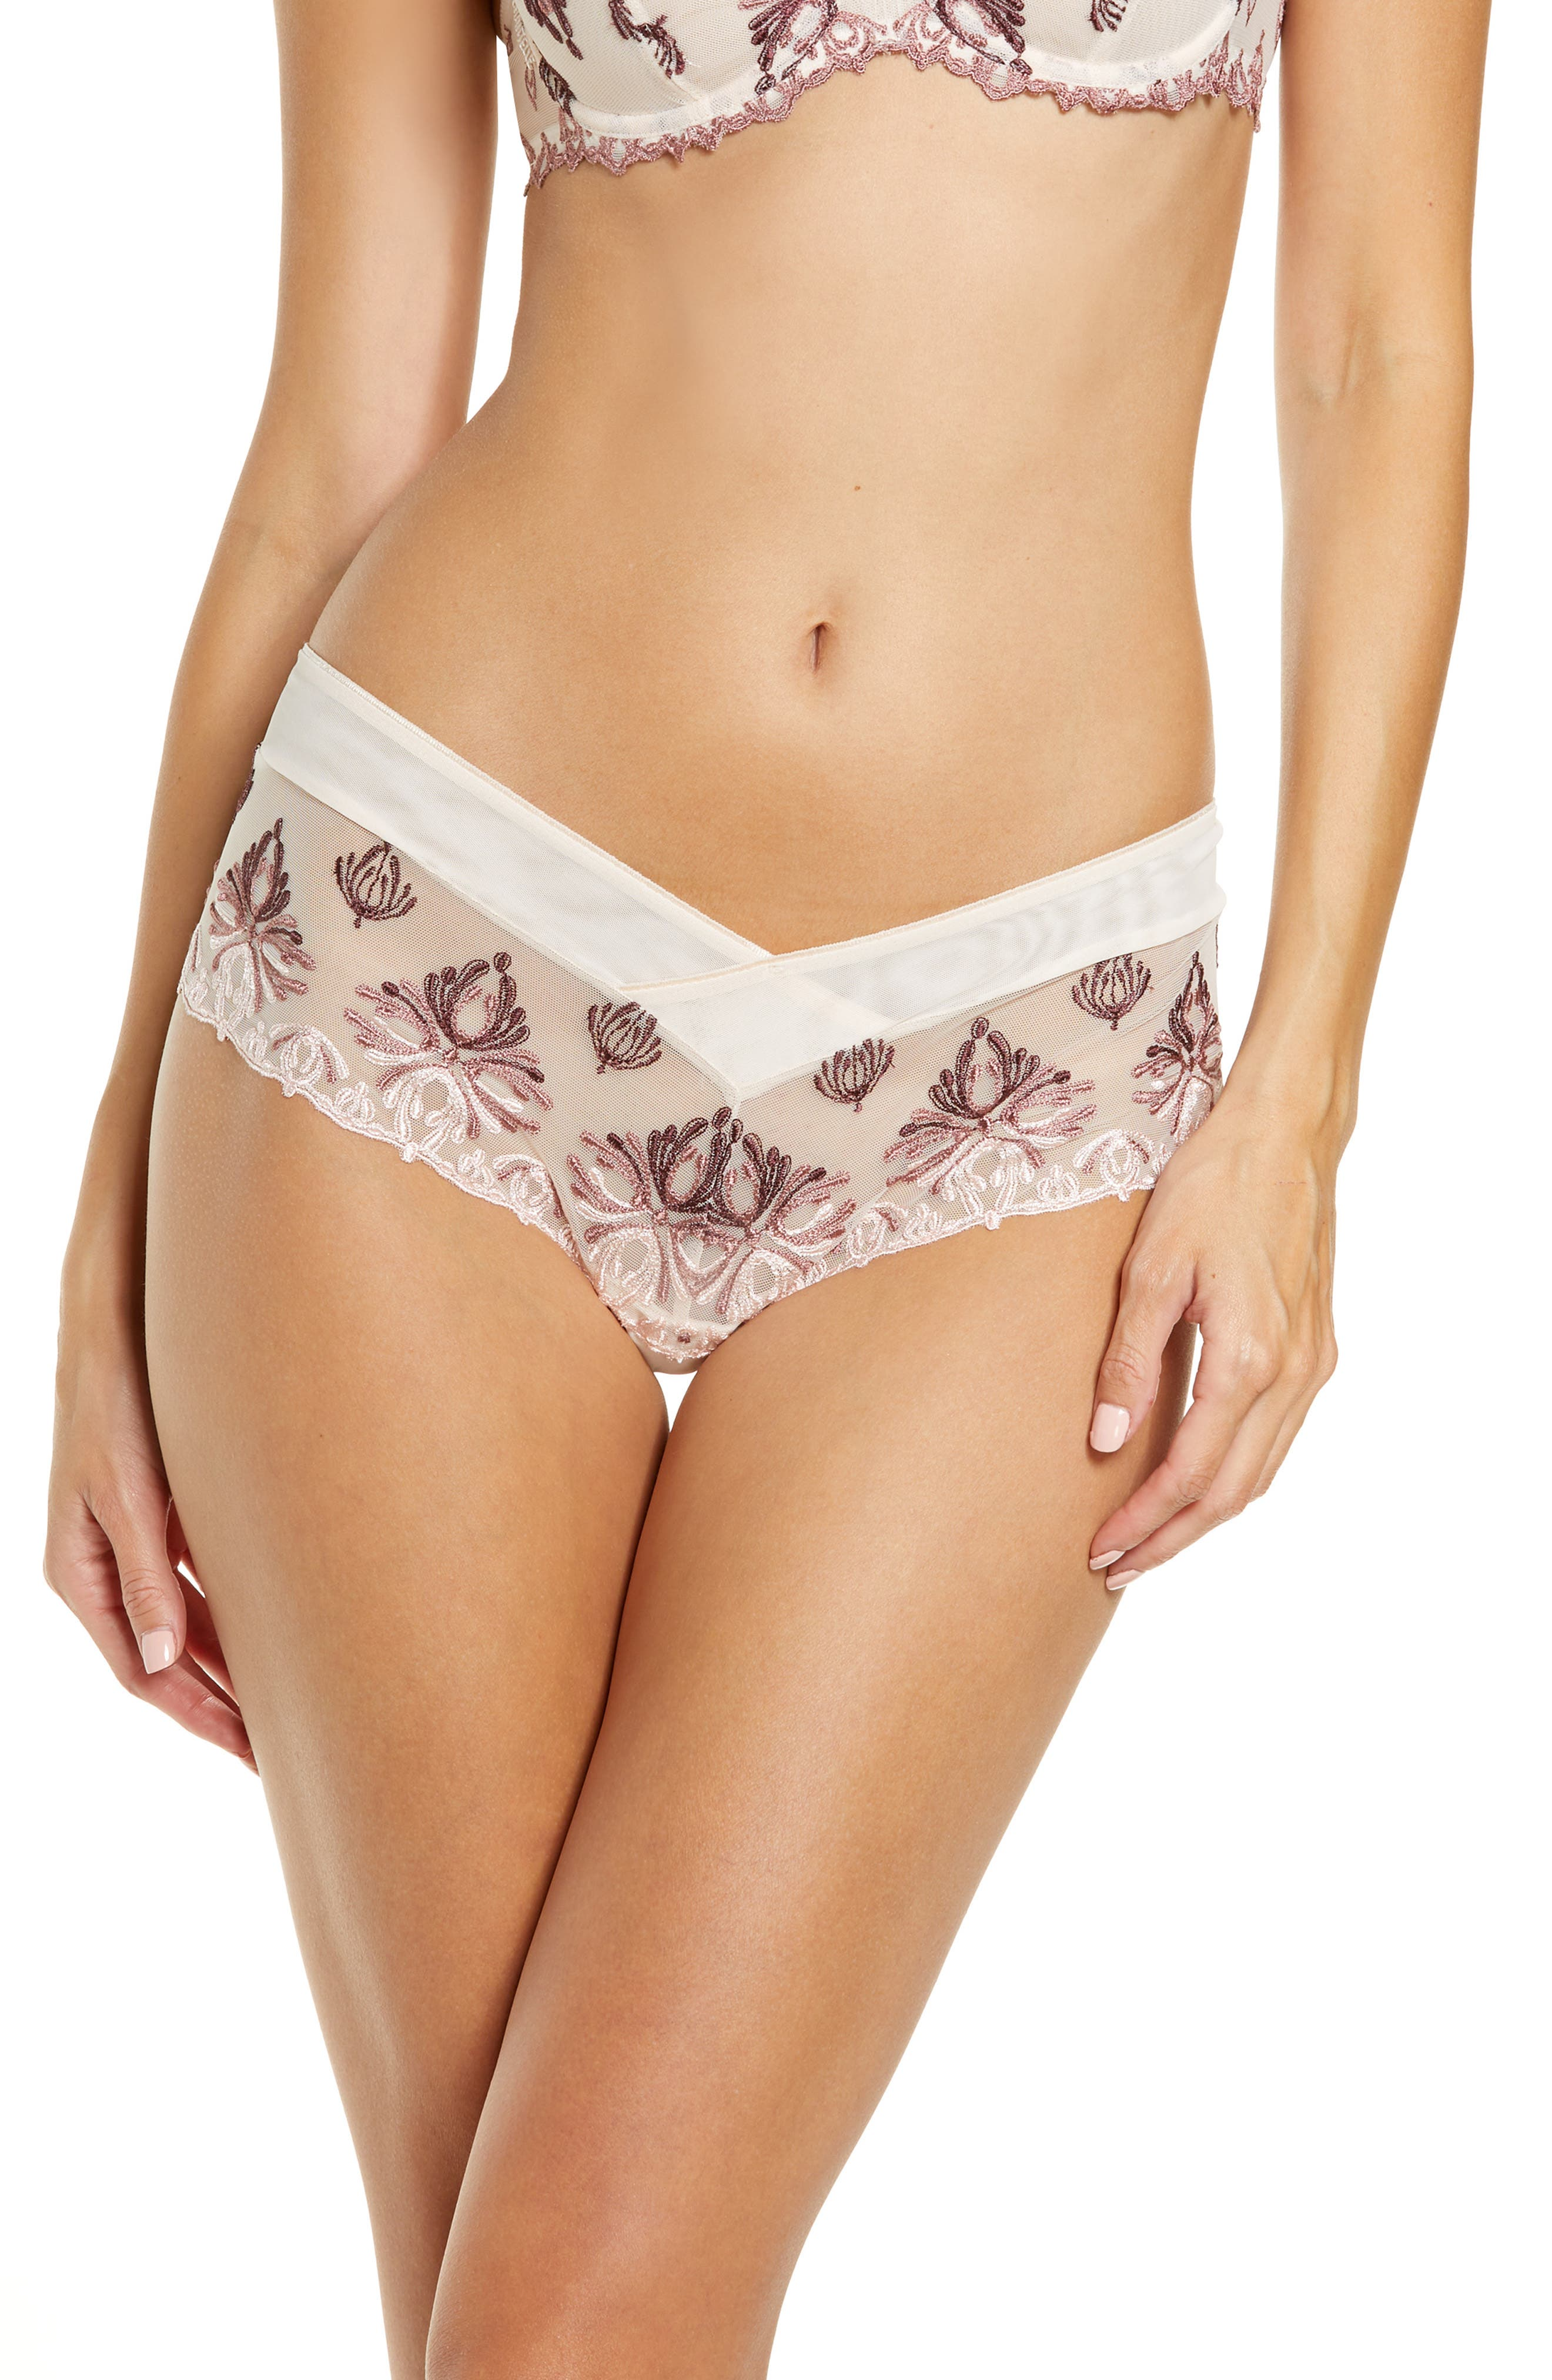 Champs-Elysees Hipster Panties